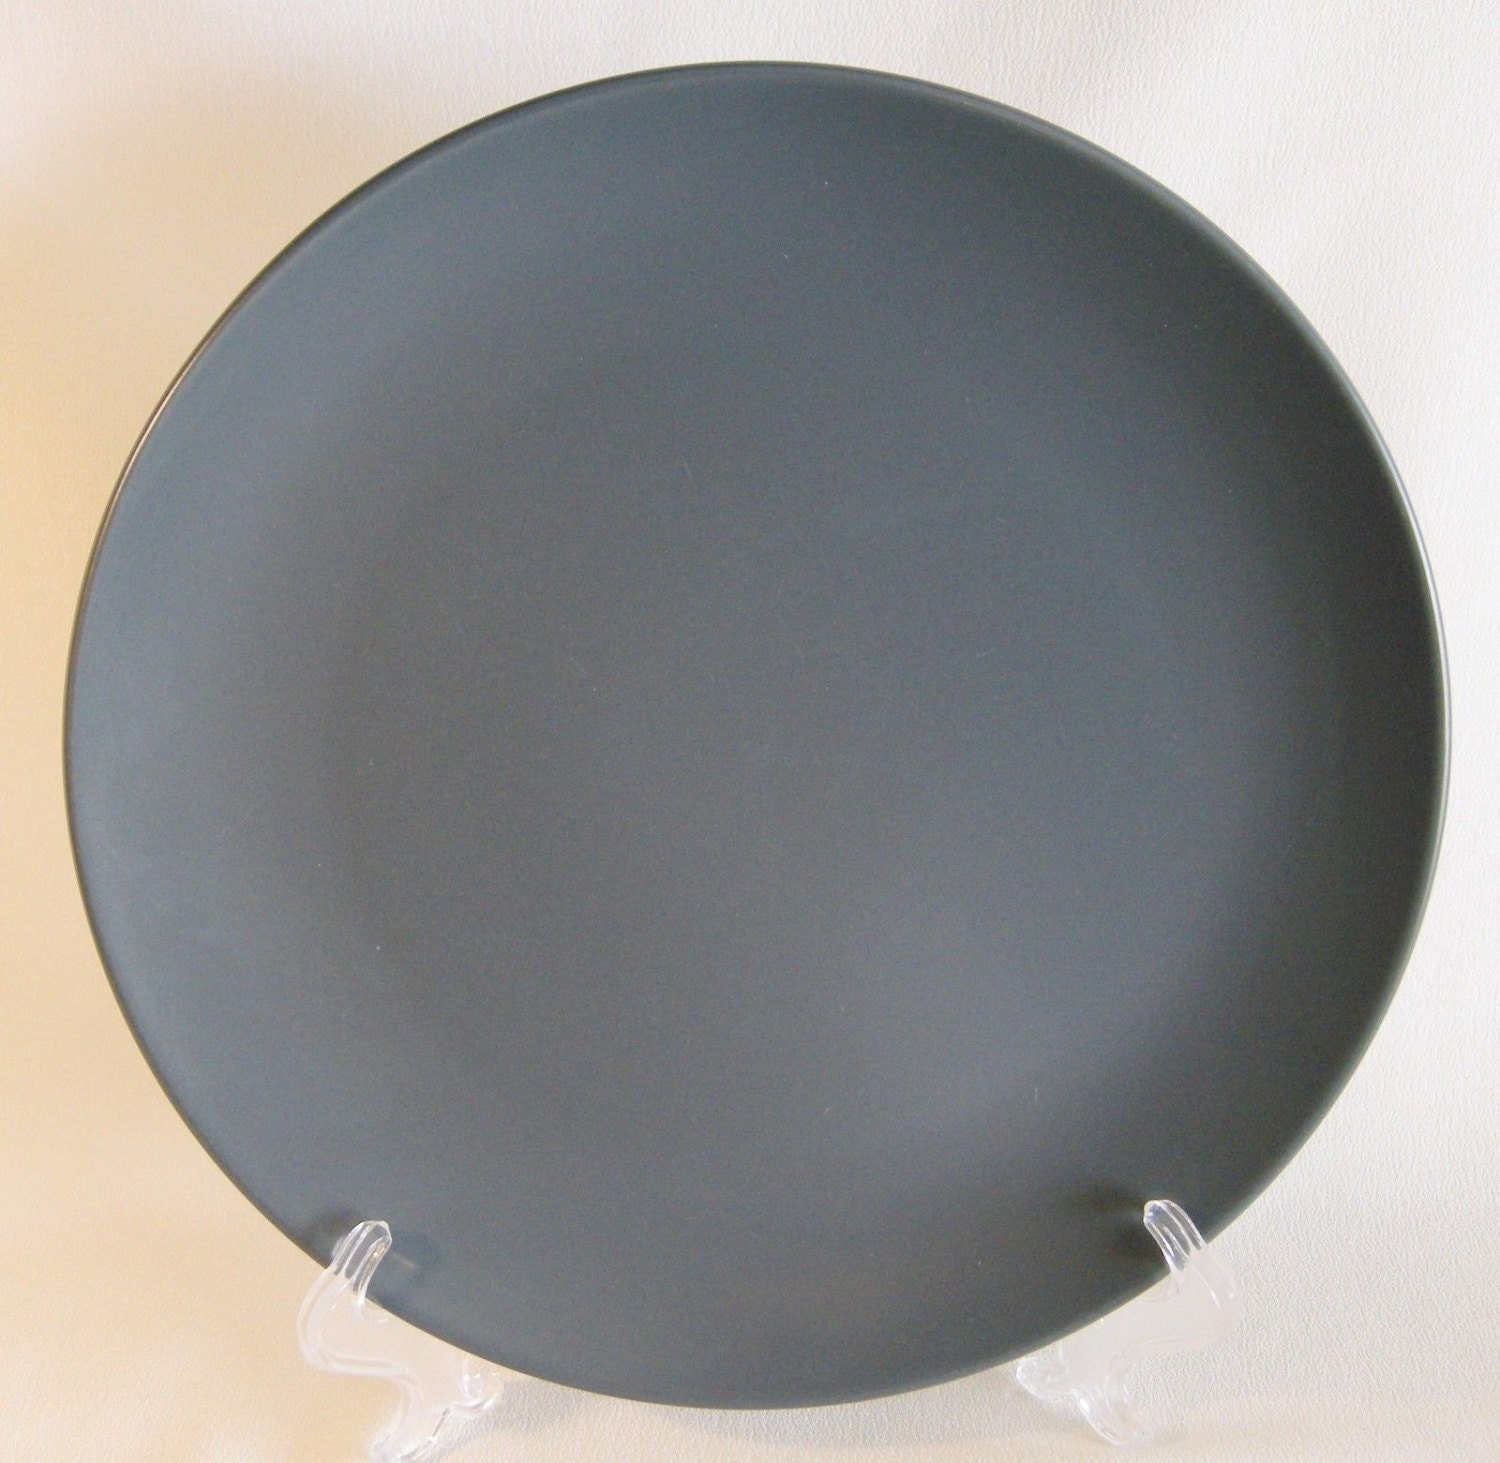 ikea sweden 2 dinner plates grey gray dark solid colored 18691